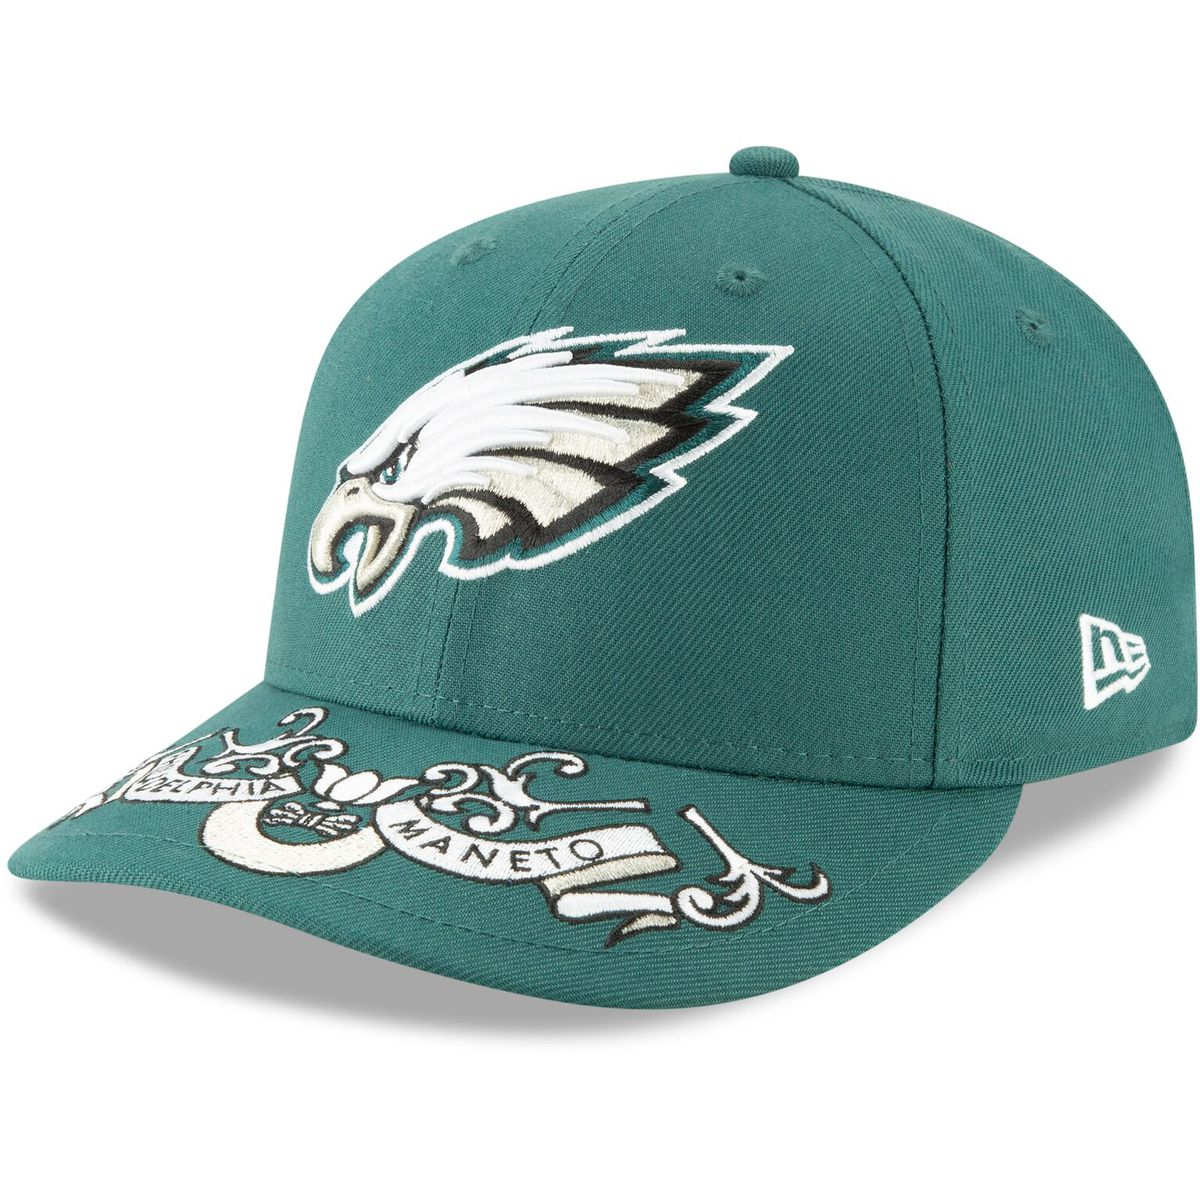 3e8321310eecf6 New Era On Stage Official Low Profile 59fifty for $37.99 Fanatics